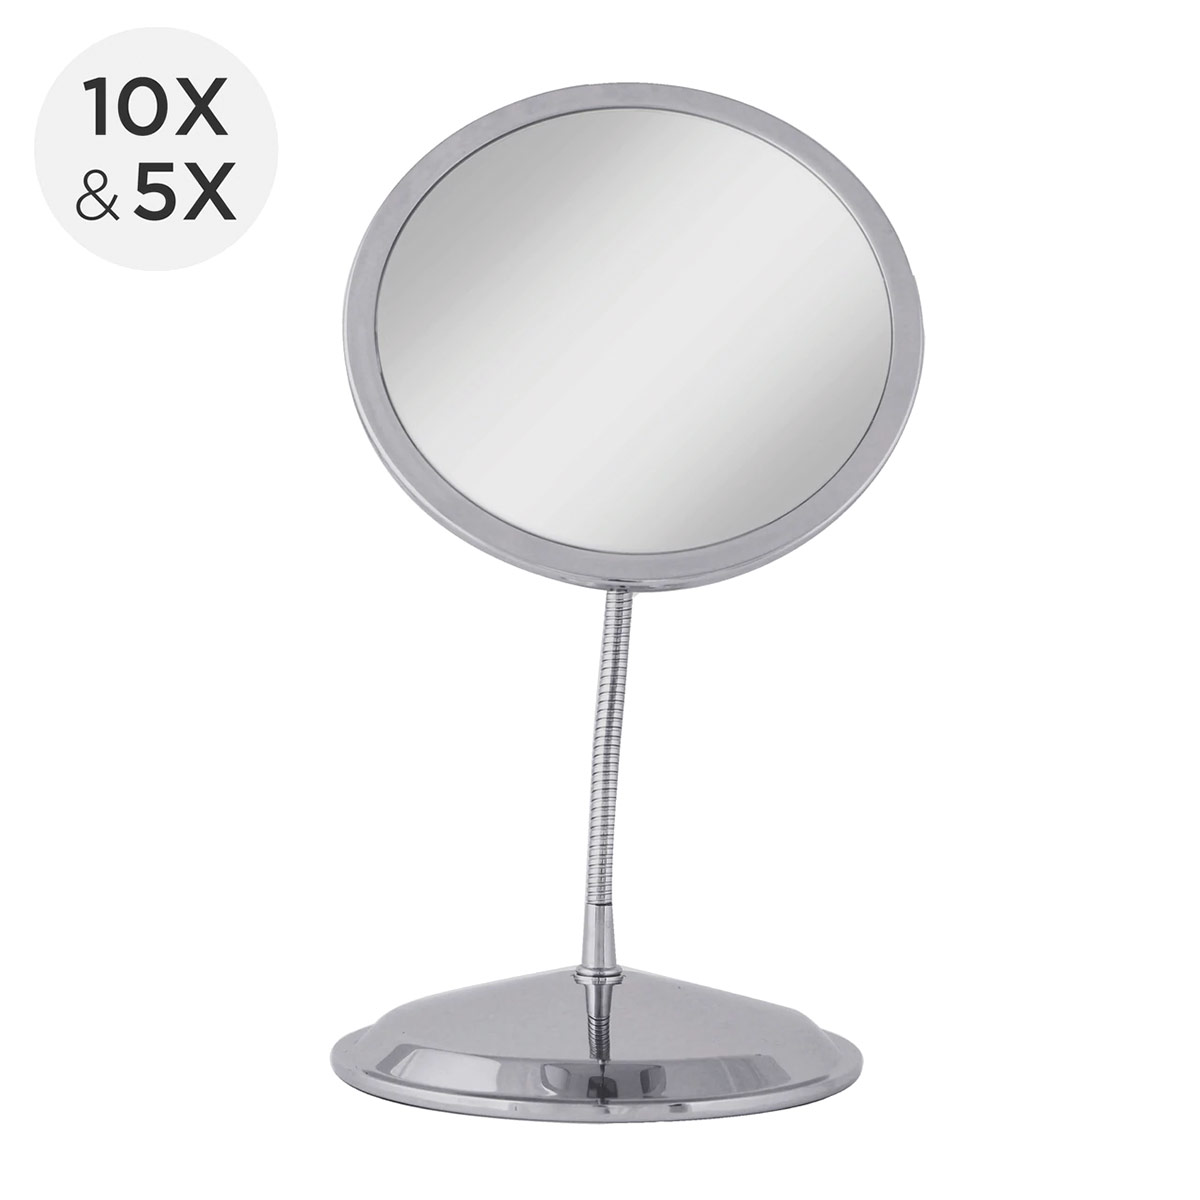 Zadro Double Vision Vanity and Suction Cup Mirror Price: $33.95